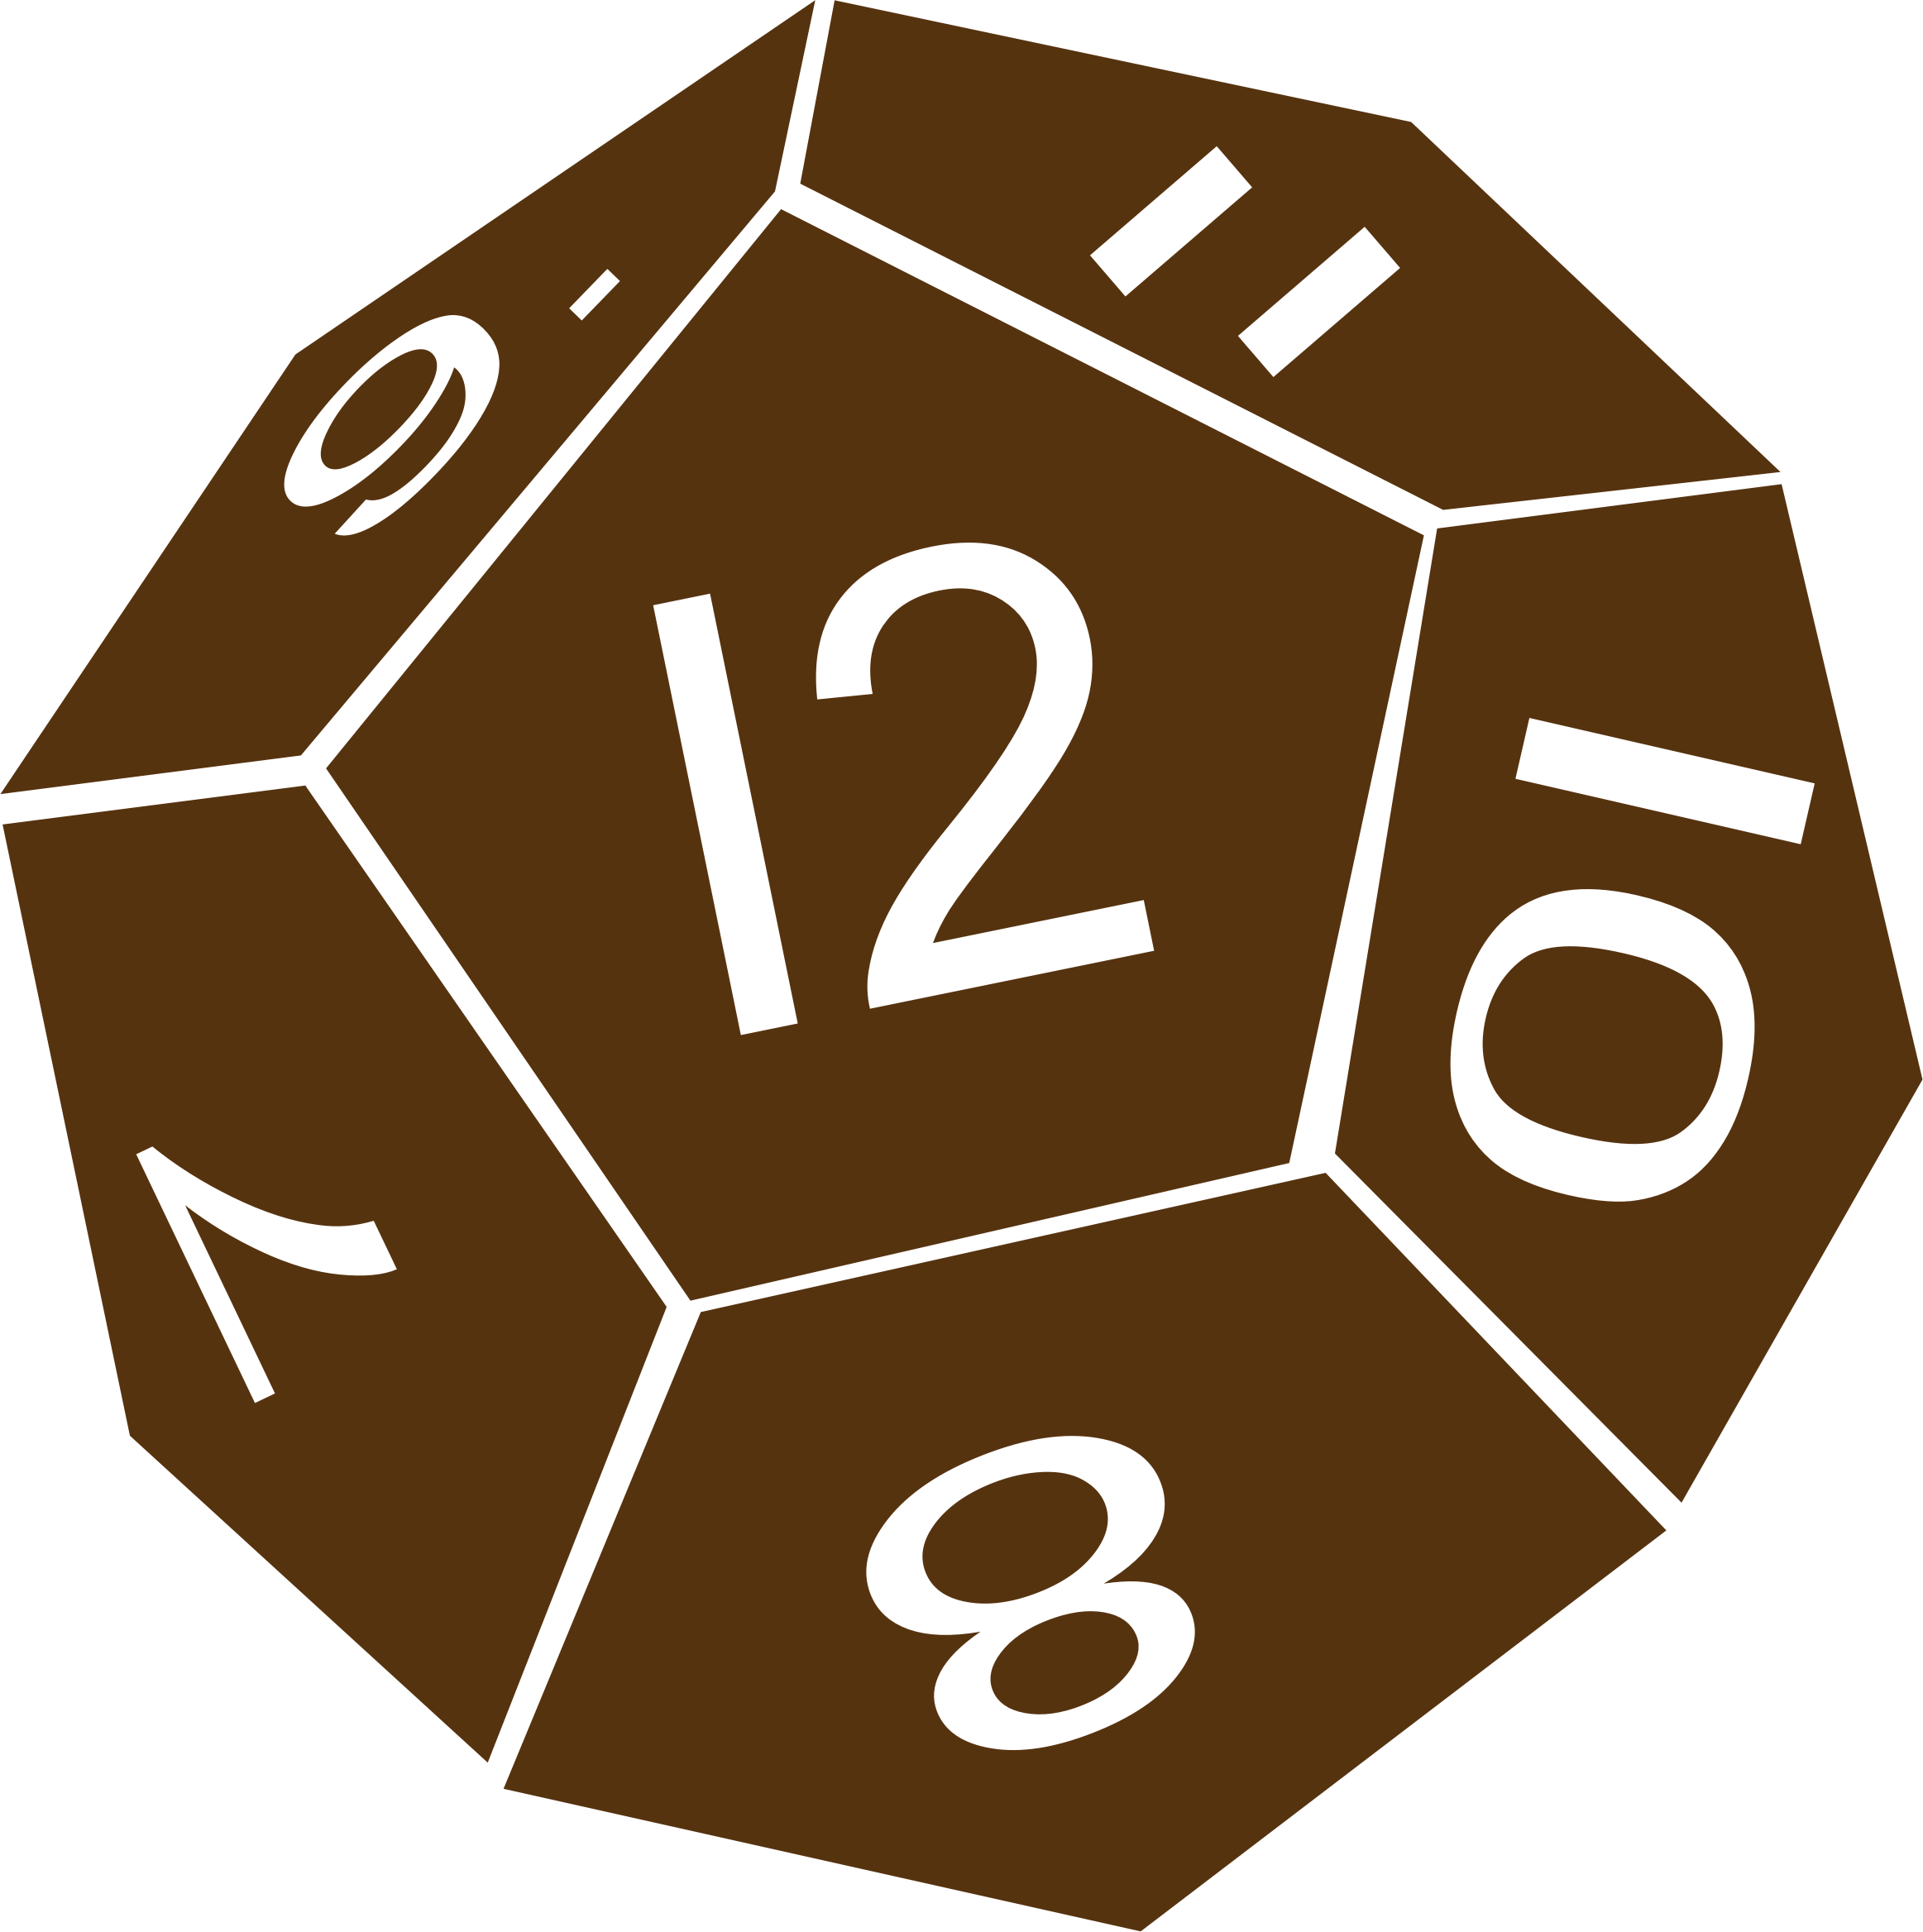 D12 Twelve Sided Dice by dwmoook